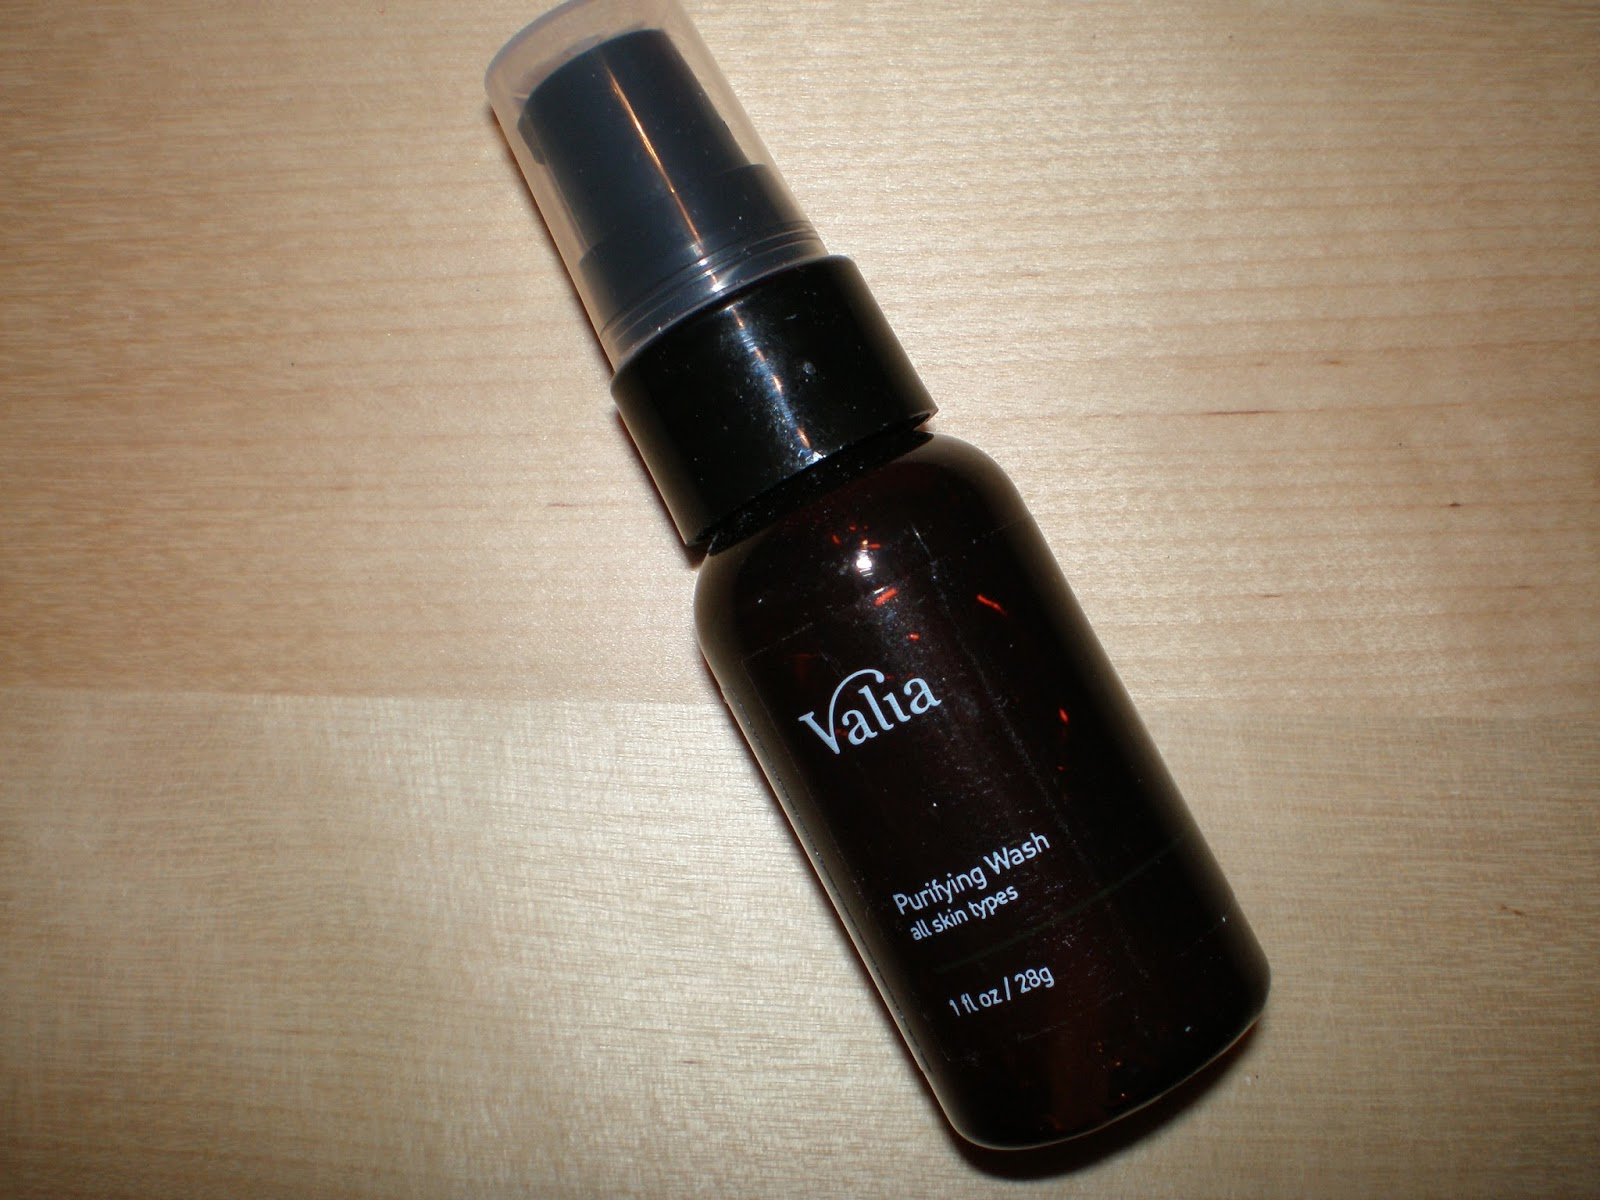 Valia Purifying wash